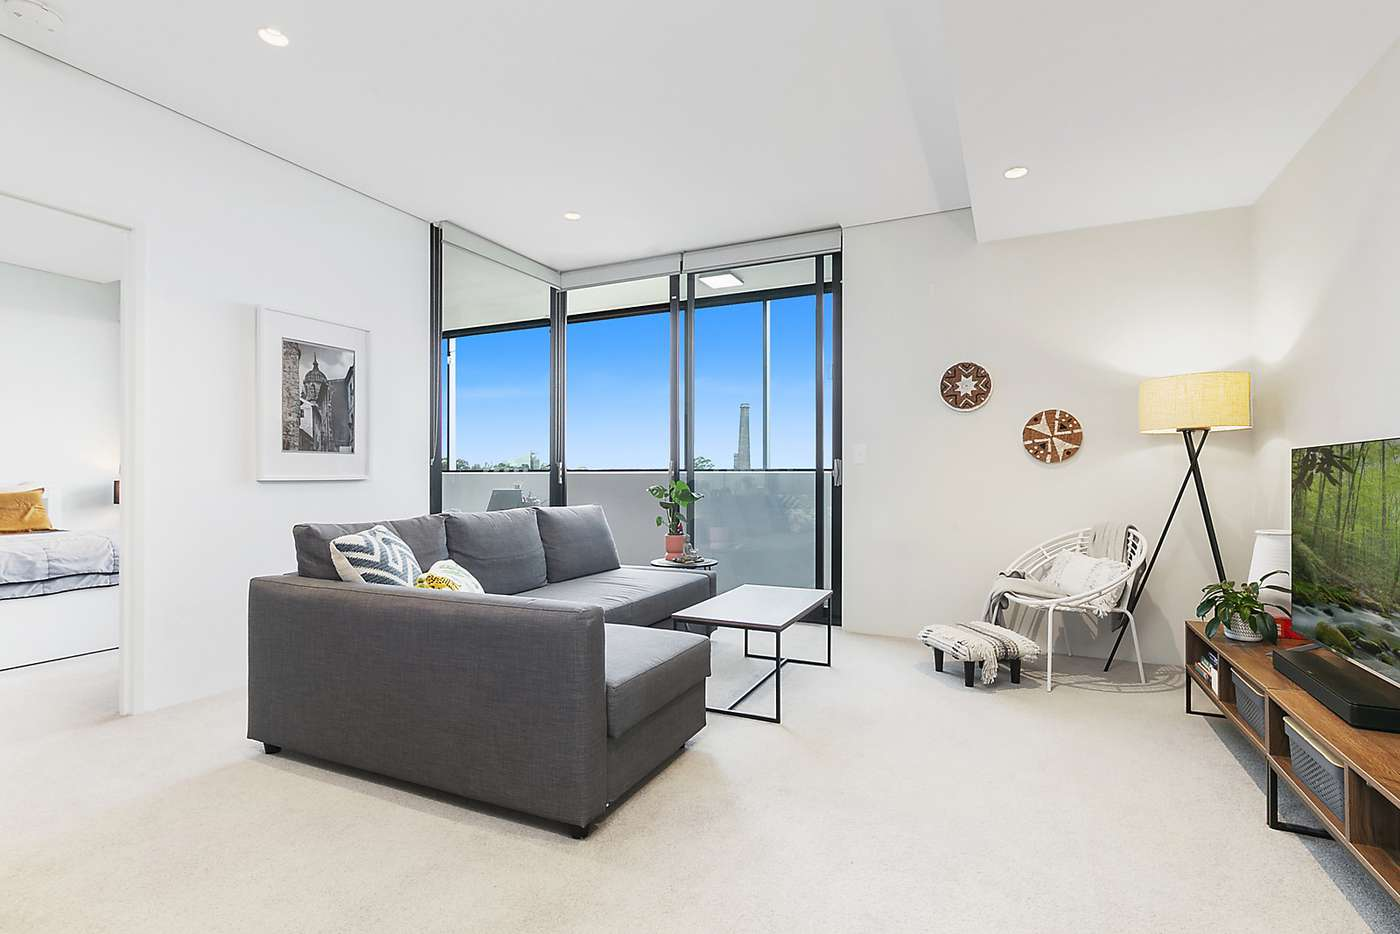 Main view of Homely apartment listing, 104/70 Mobbs Lane, Eastwood NSW 2122